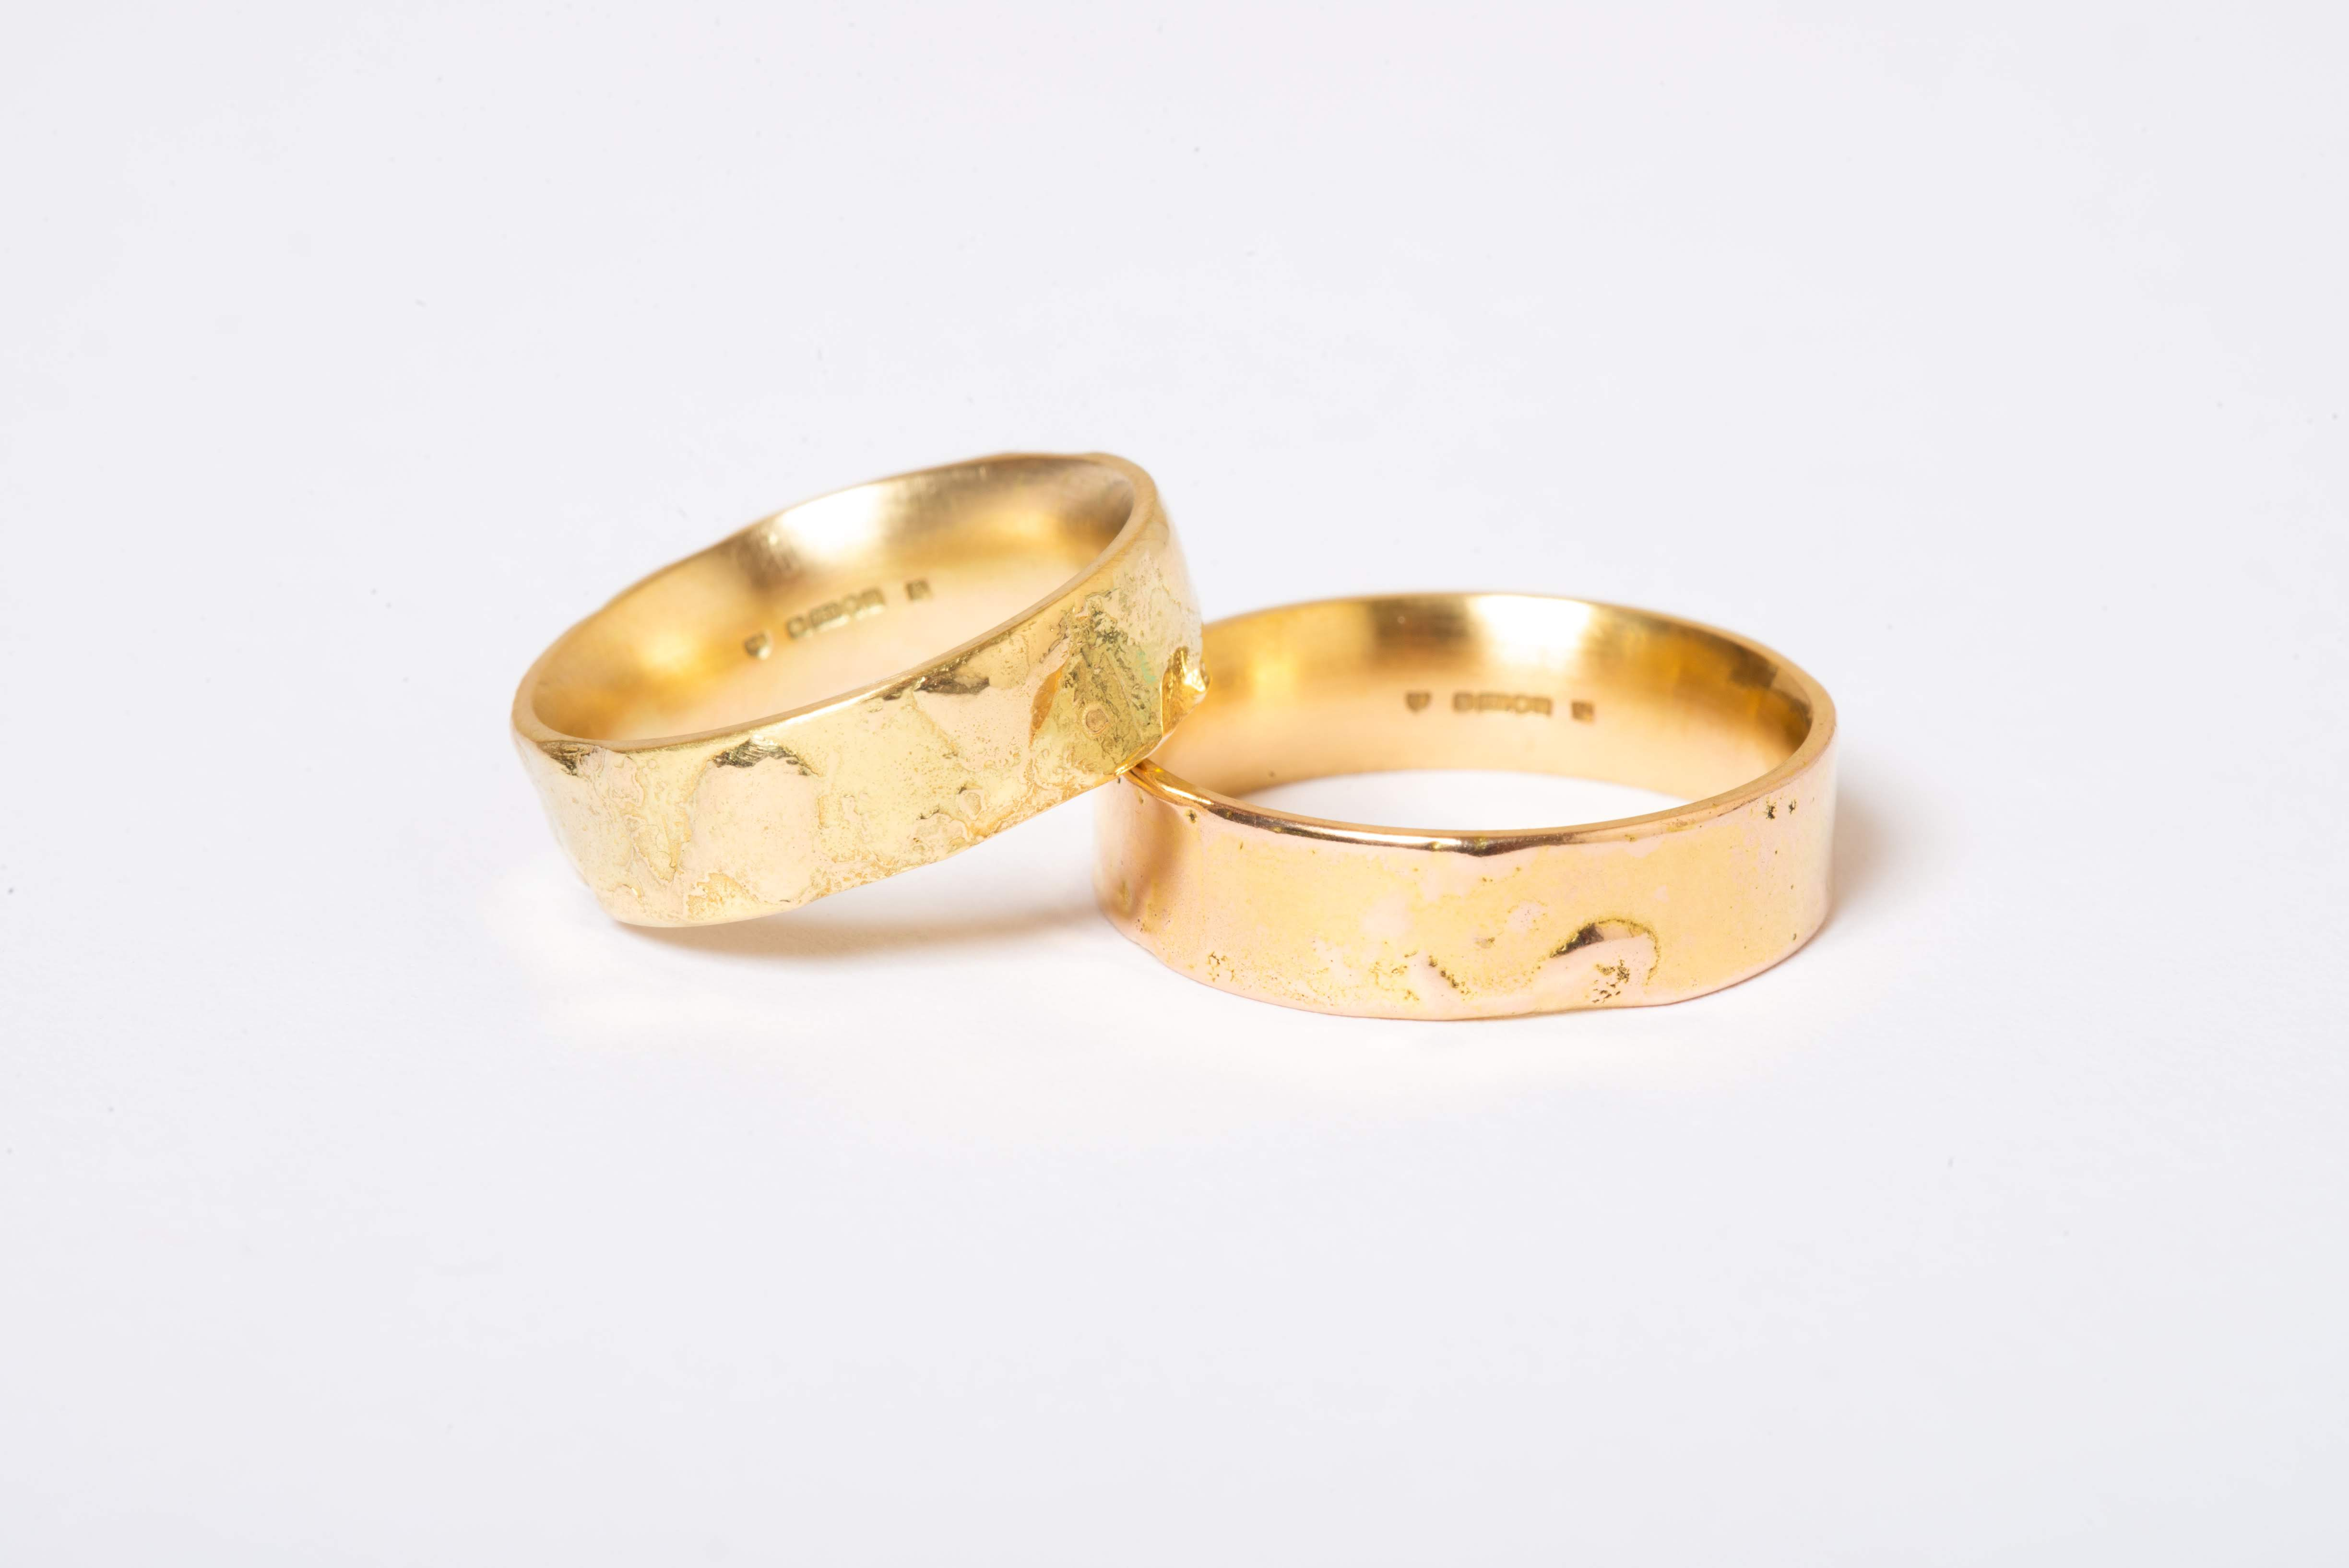 Fairtrade gold reticulated rings